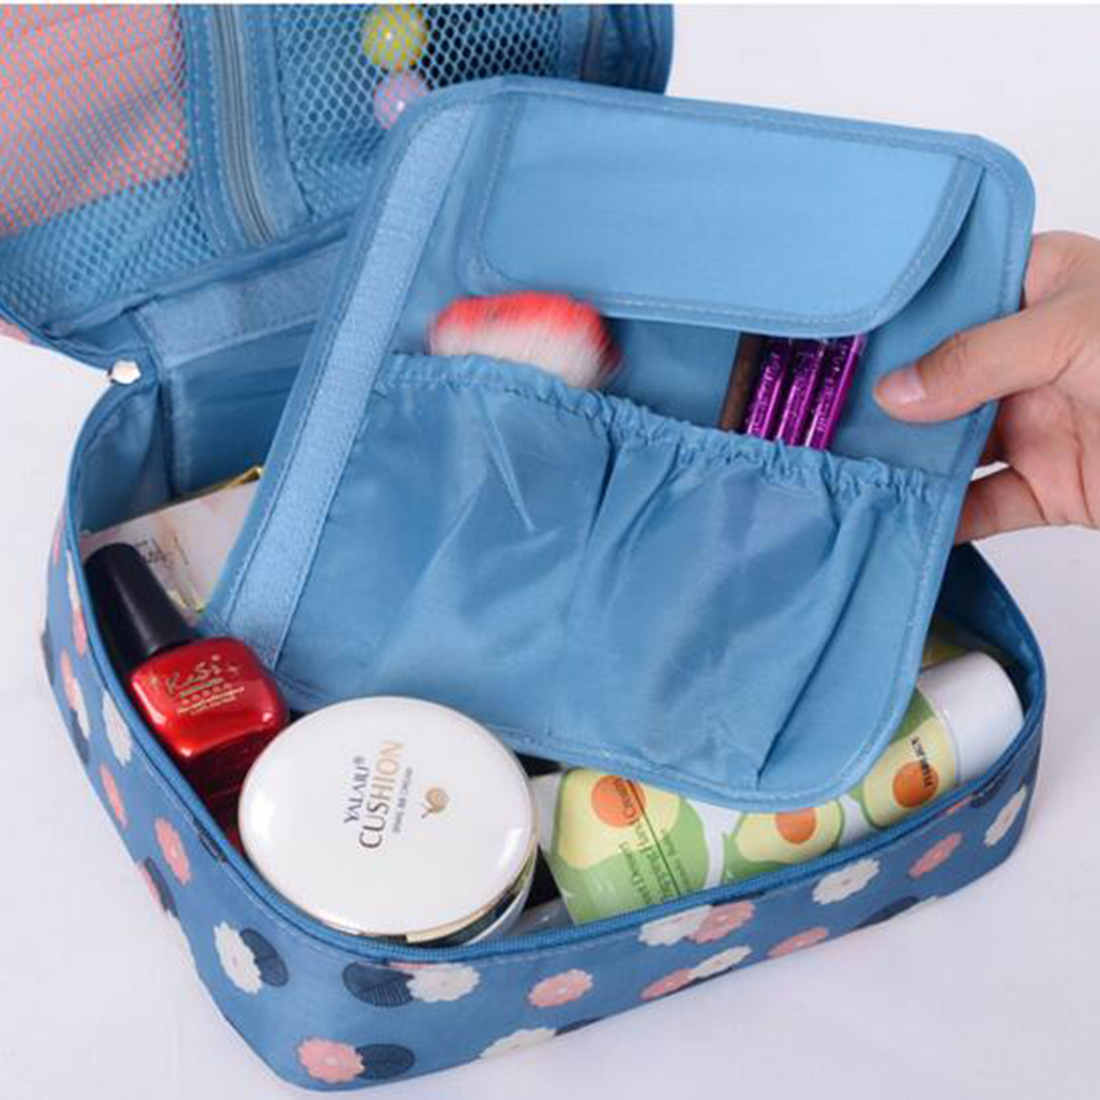 Ruched Floral Casual Nylon Zipper New Women Makeup bag Cosmetic bag Case Make Up Organizer Toiletry Storage Travel Wash